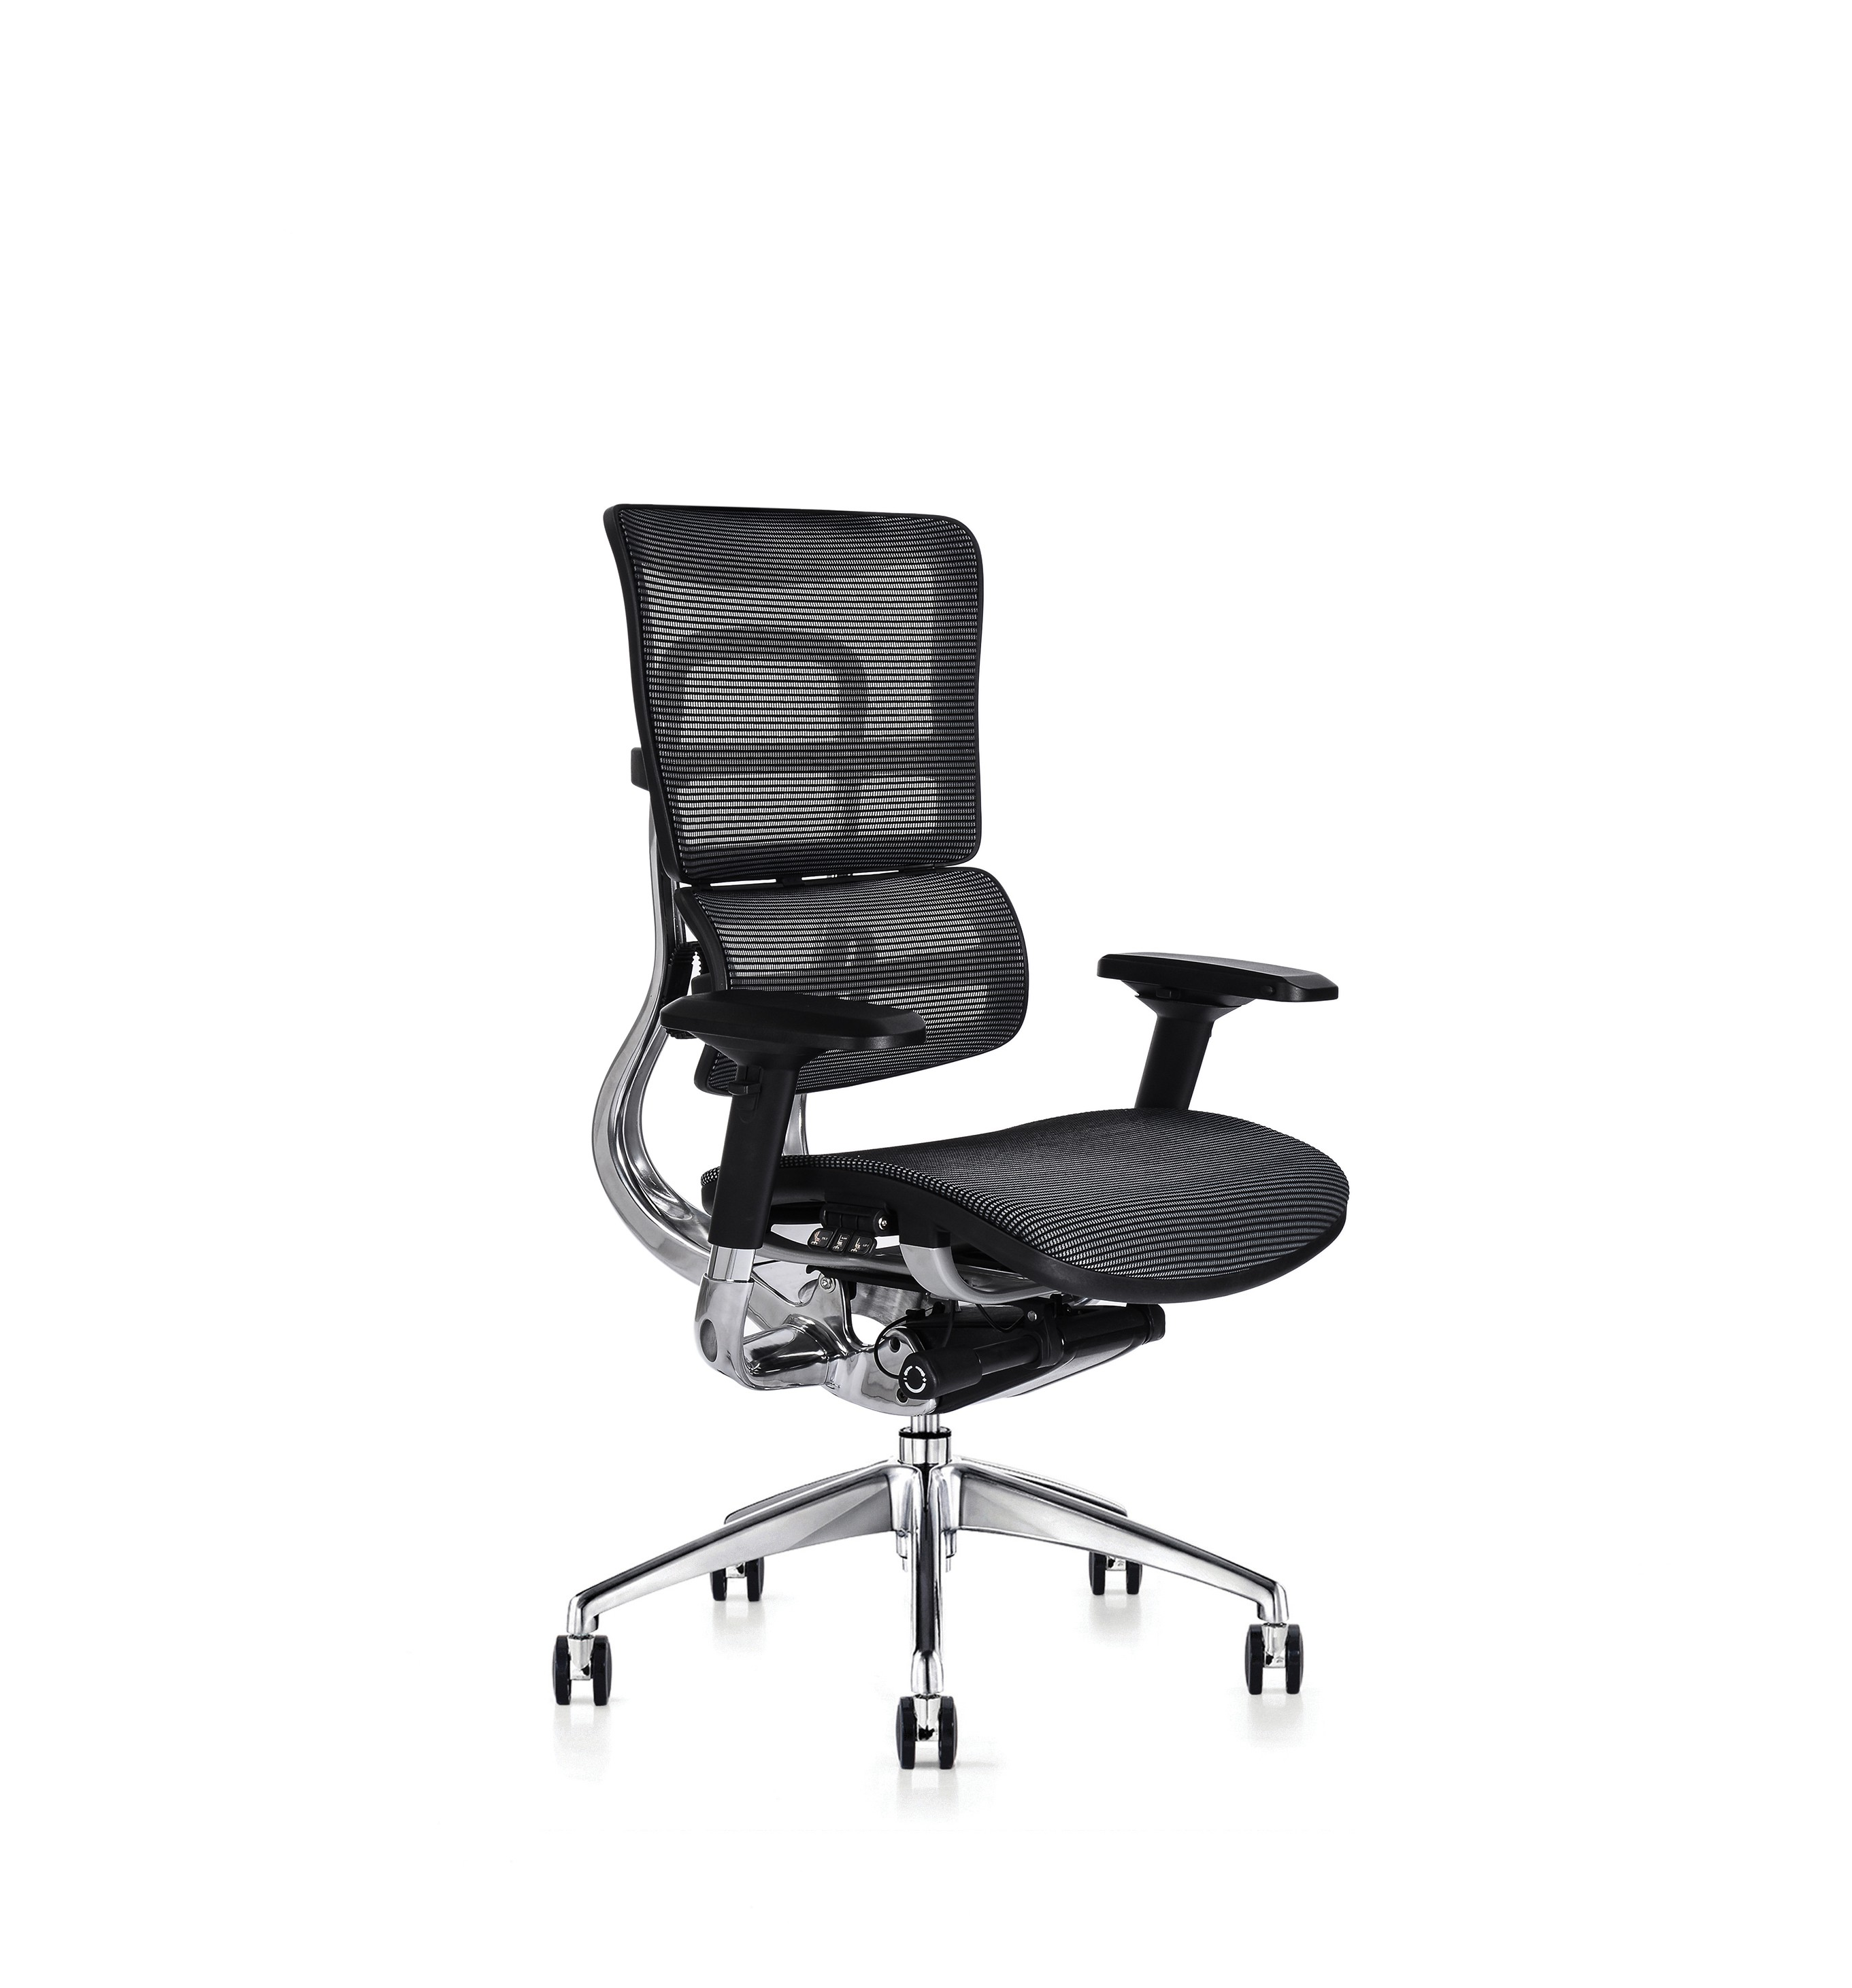 i29 - Comfort ergonomic, including the lumbar and pelvic support system and intuitive controls, it is simple for any user to quickly adjust and sit comfortably, correctly supported with dynamic movement from the moment they sit in the chair.